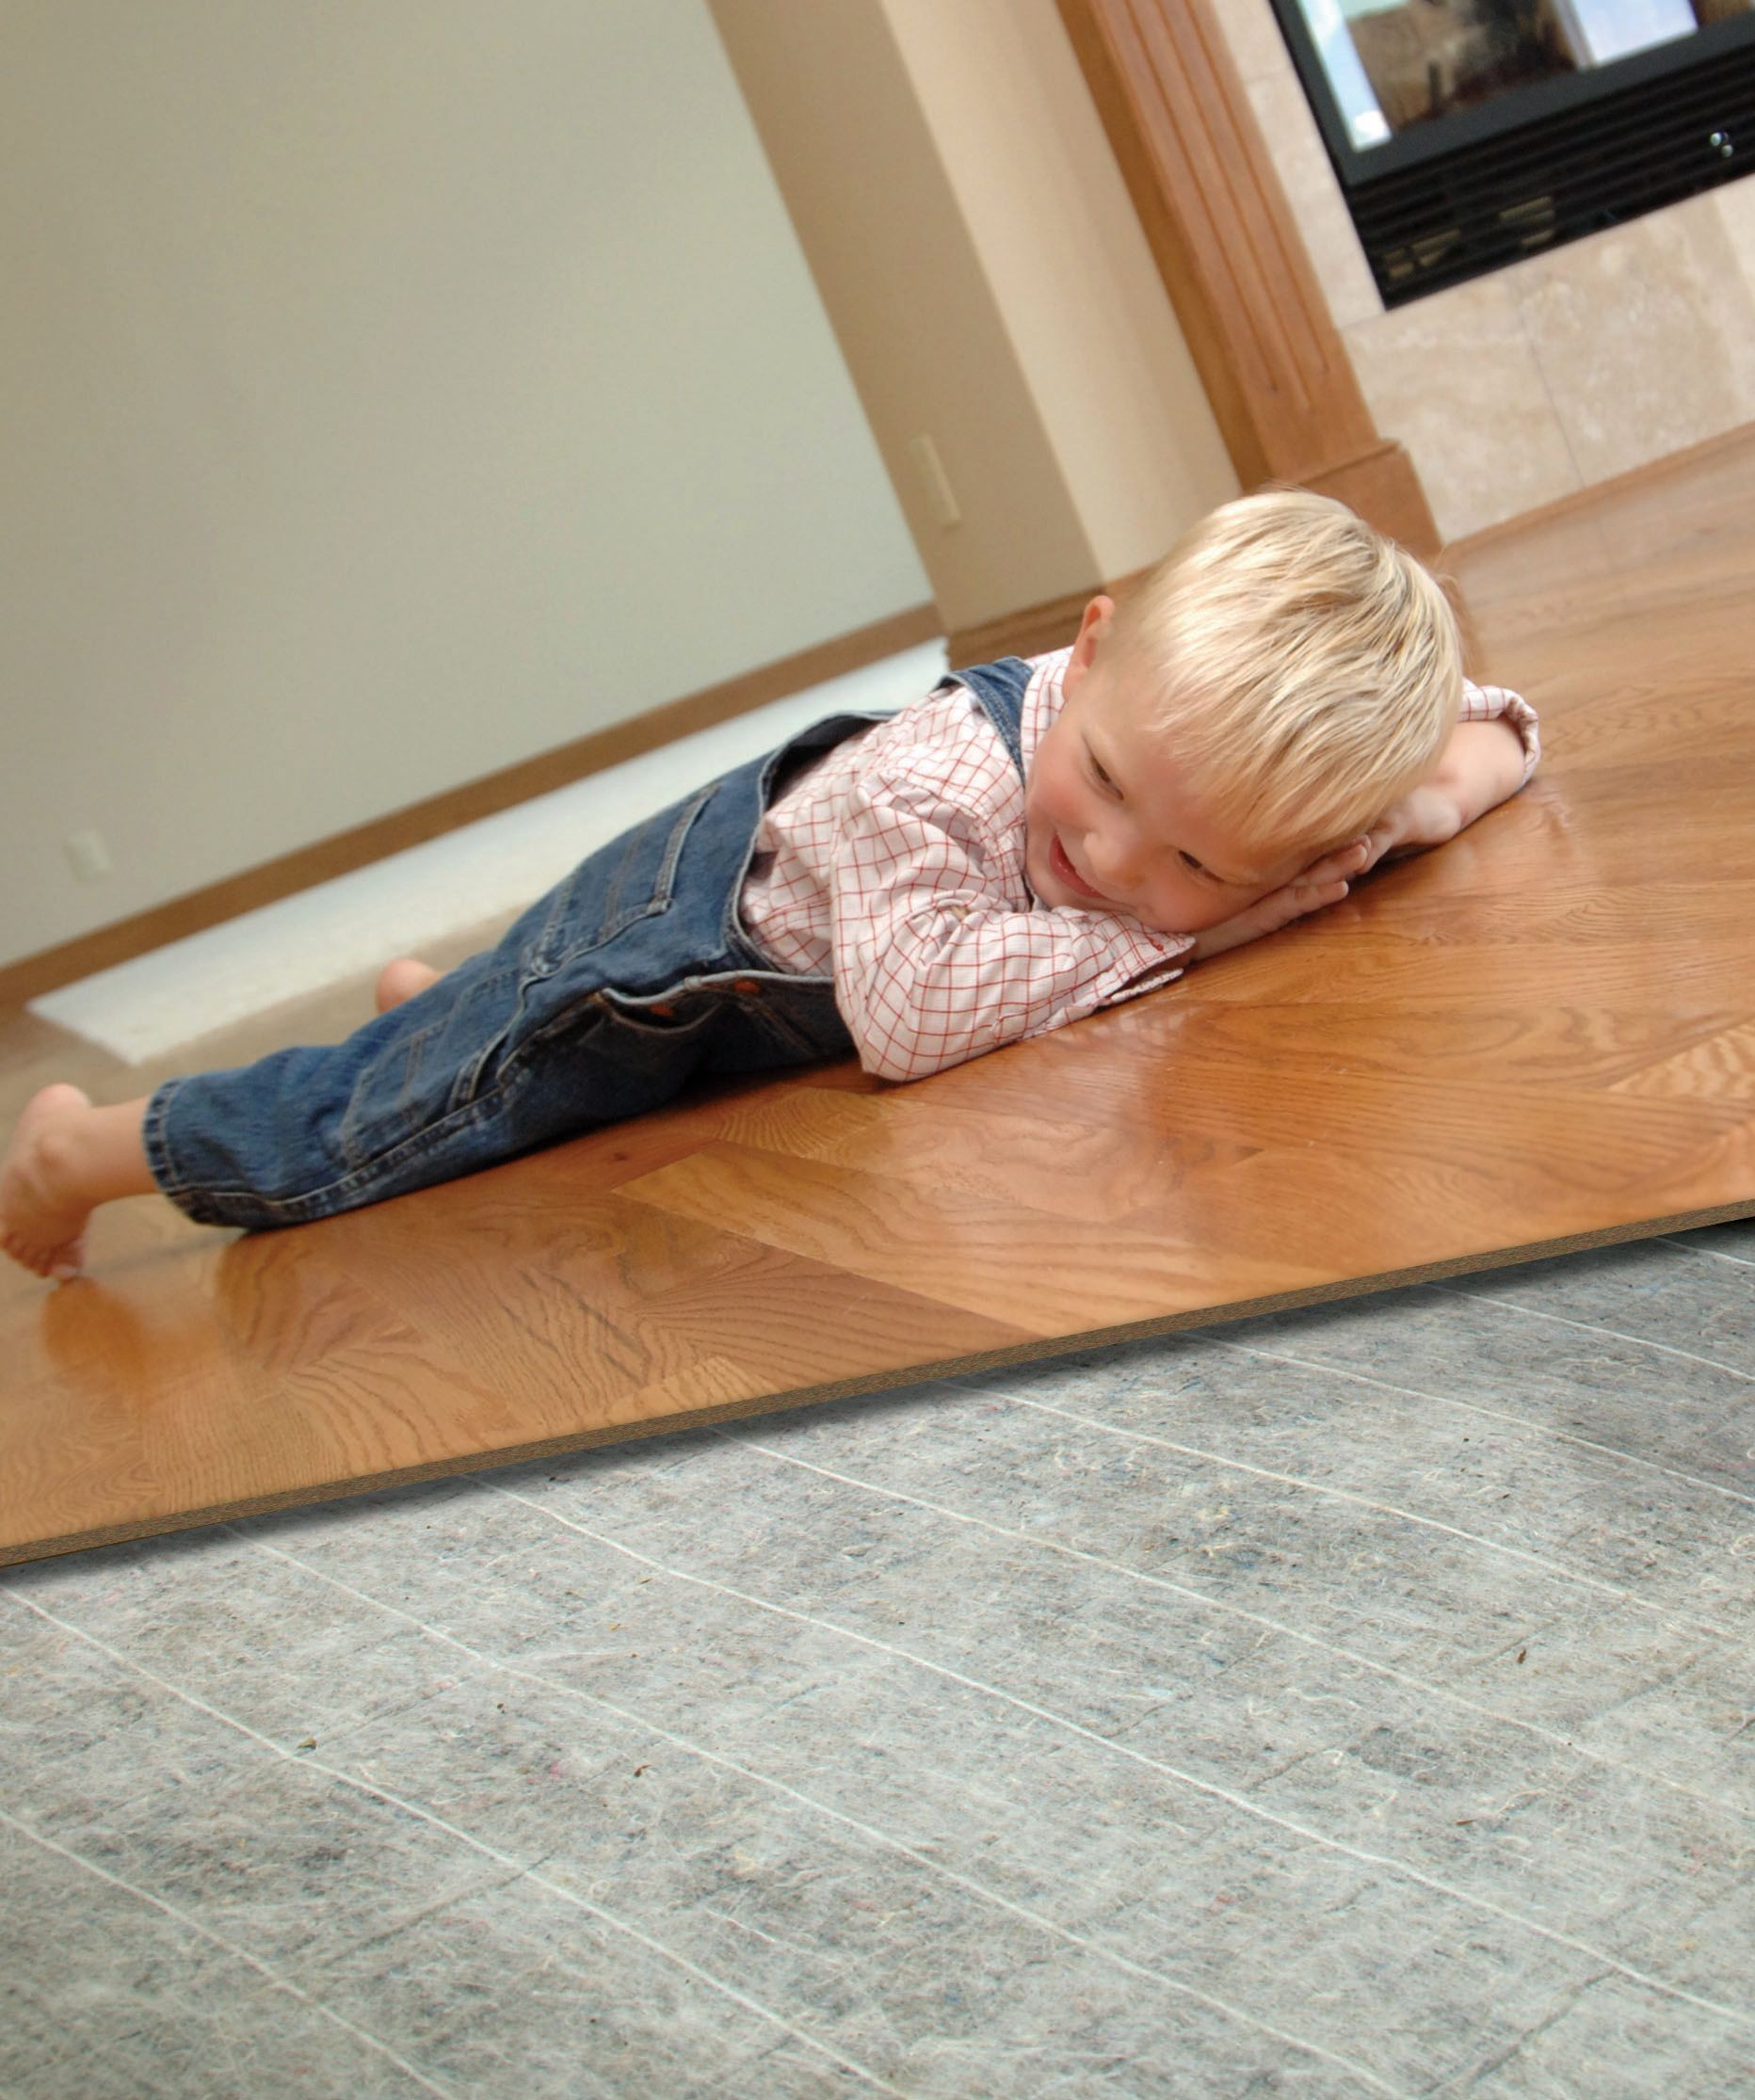 installing underlayment for hardwood floors of 13 inspirational hardwood underlayment photograph dizpos com regarding hardwood underlayment inspirational add warmth to any room underfoot with radiant heat underlayment stock of 13